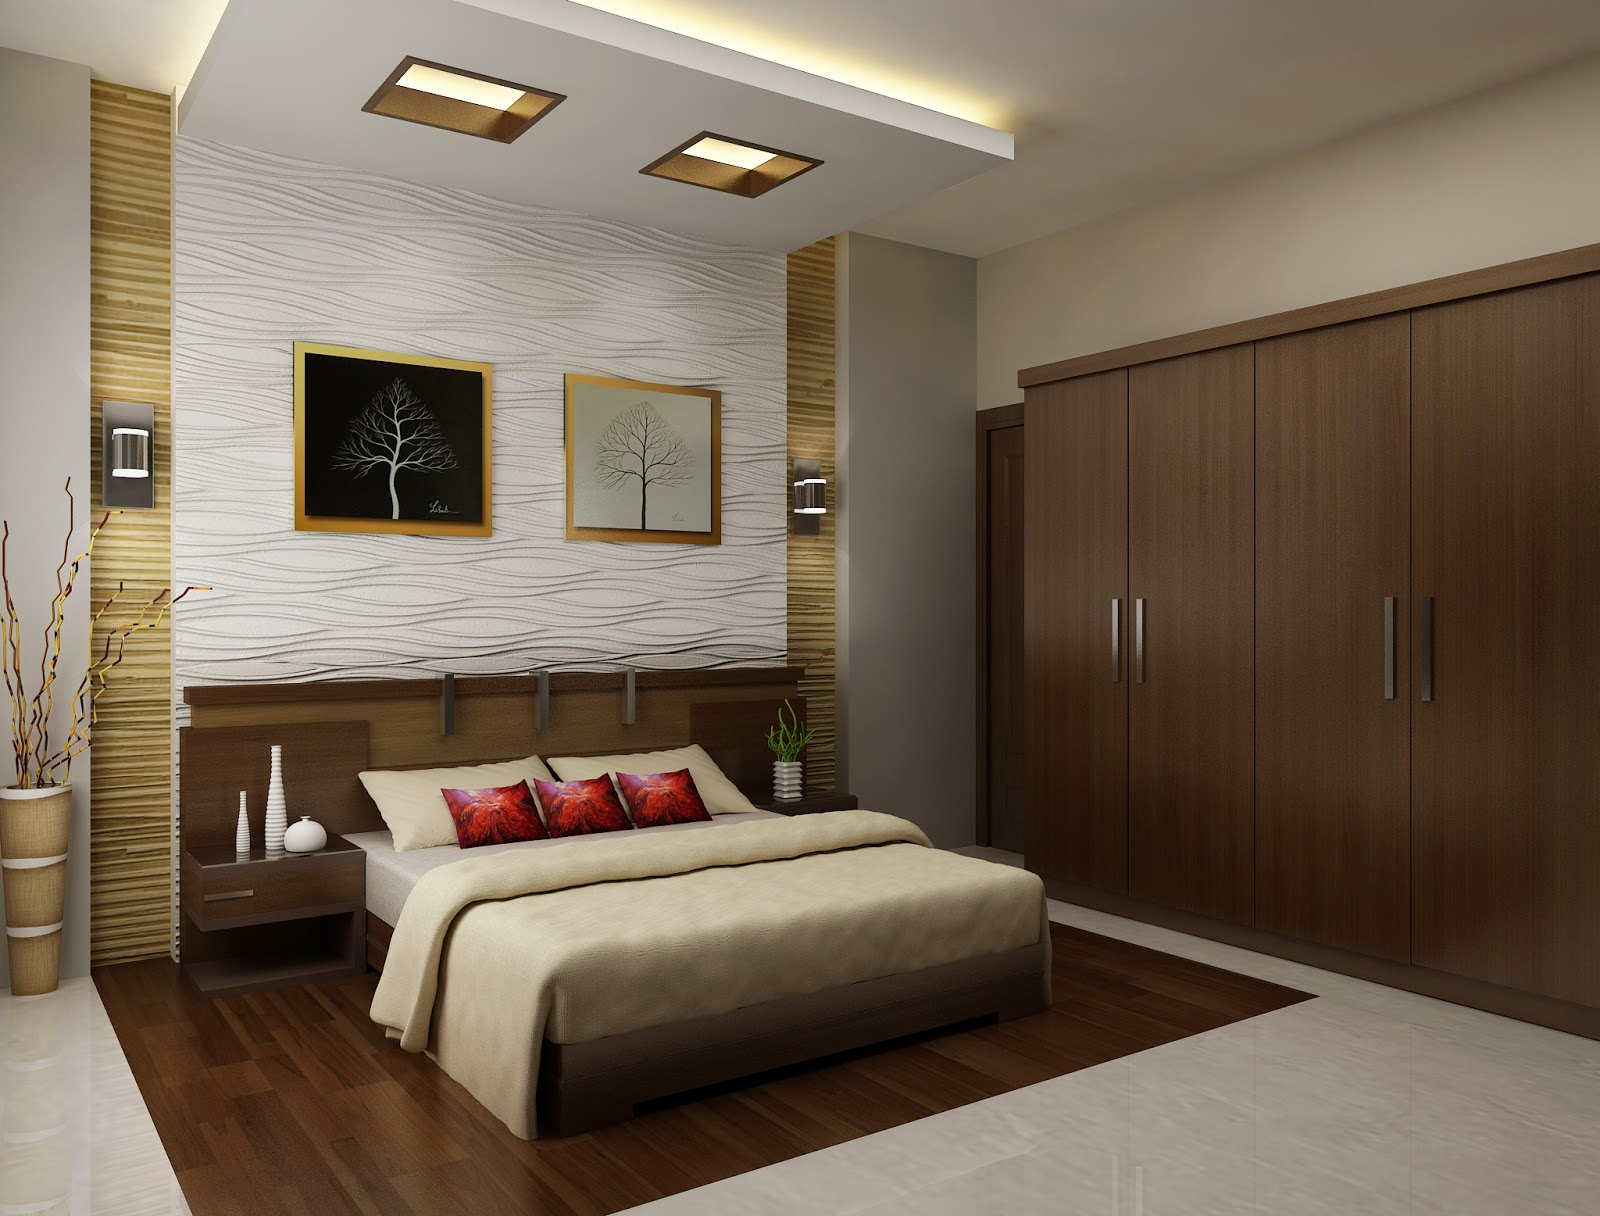 Interior Design Of Bedroom In Indian Style Design Ideas Bedroom